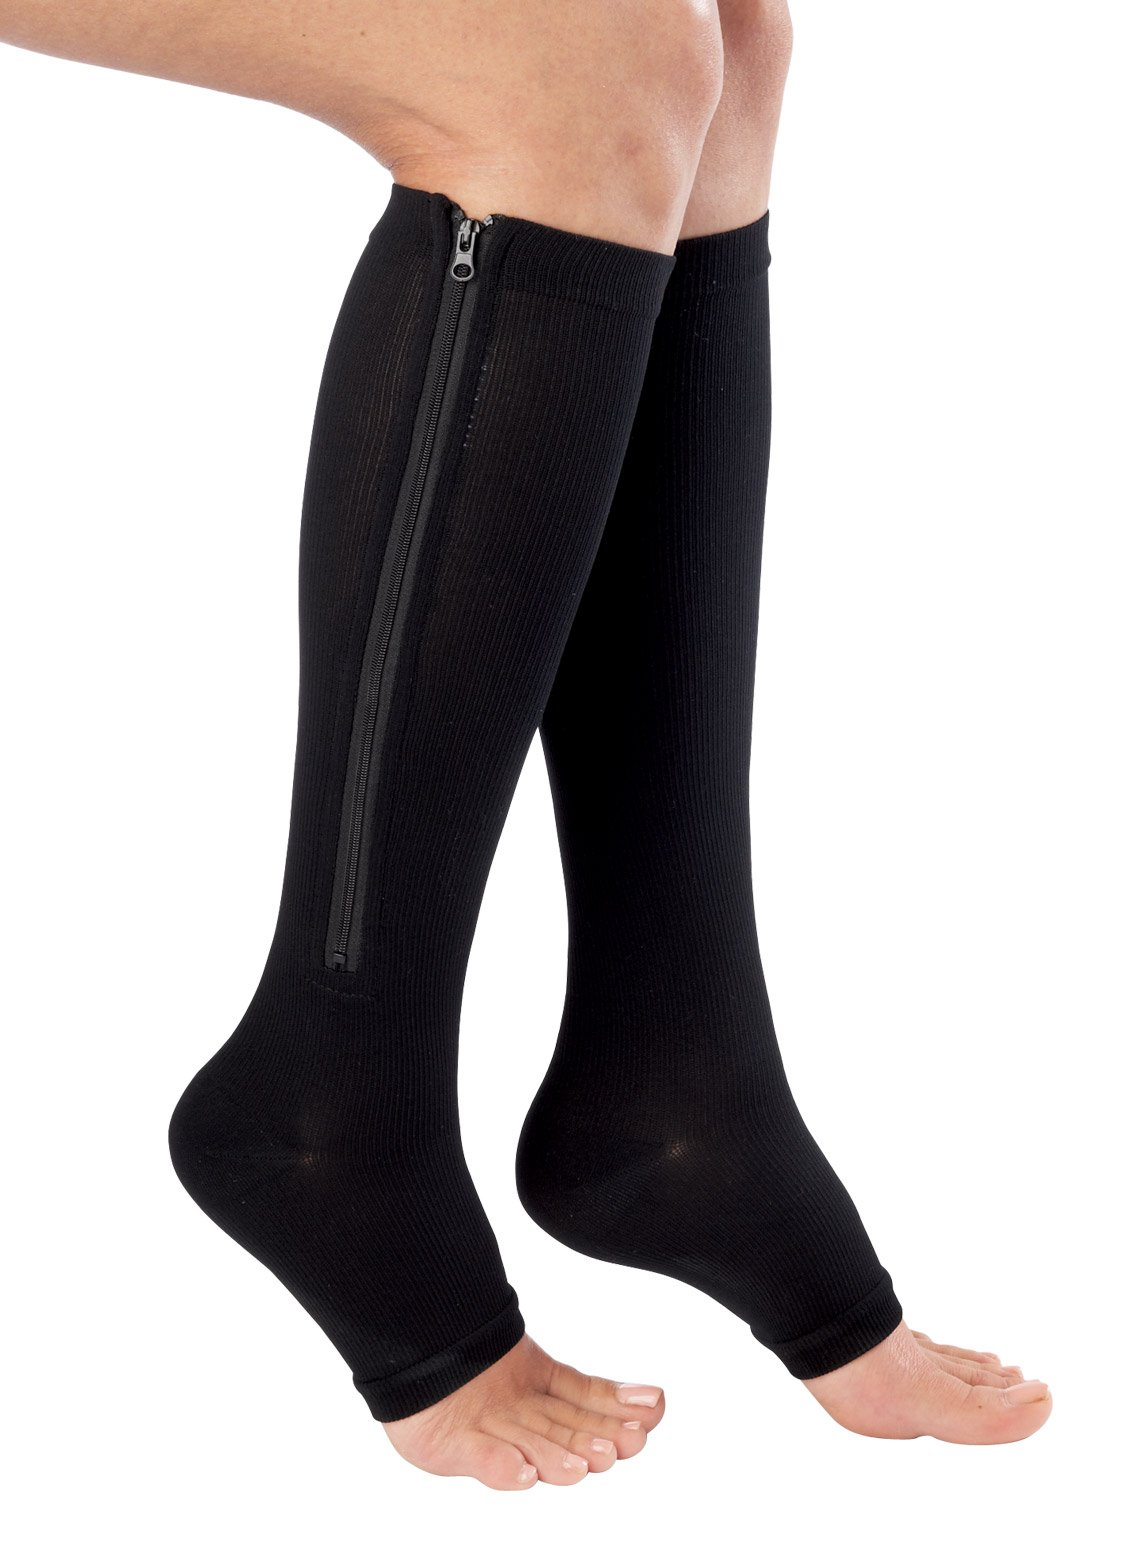 0fc6f1e7dd Bcurb Graduated Compression Socks Sports & Medical Support Recovery  Stockings. product image